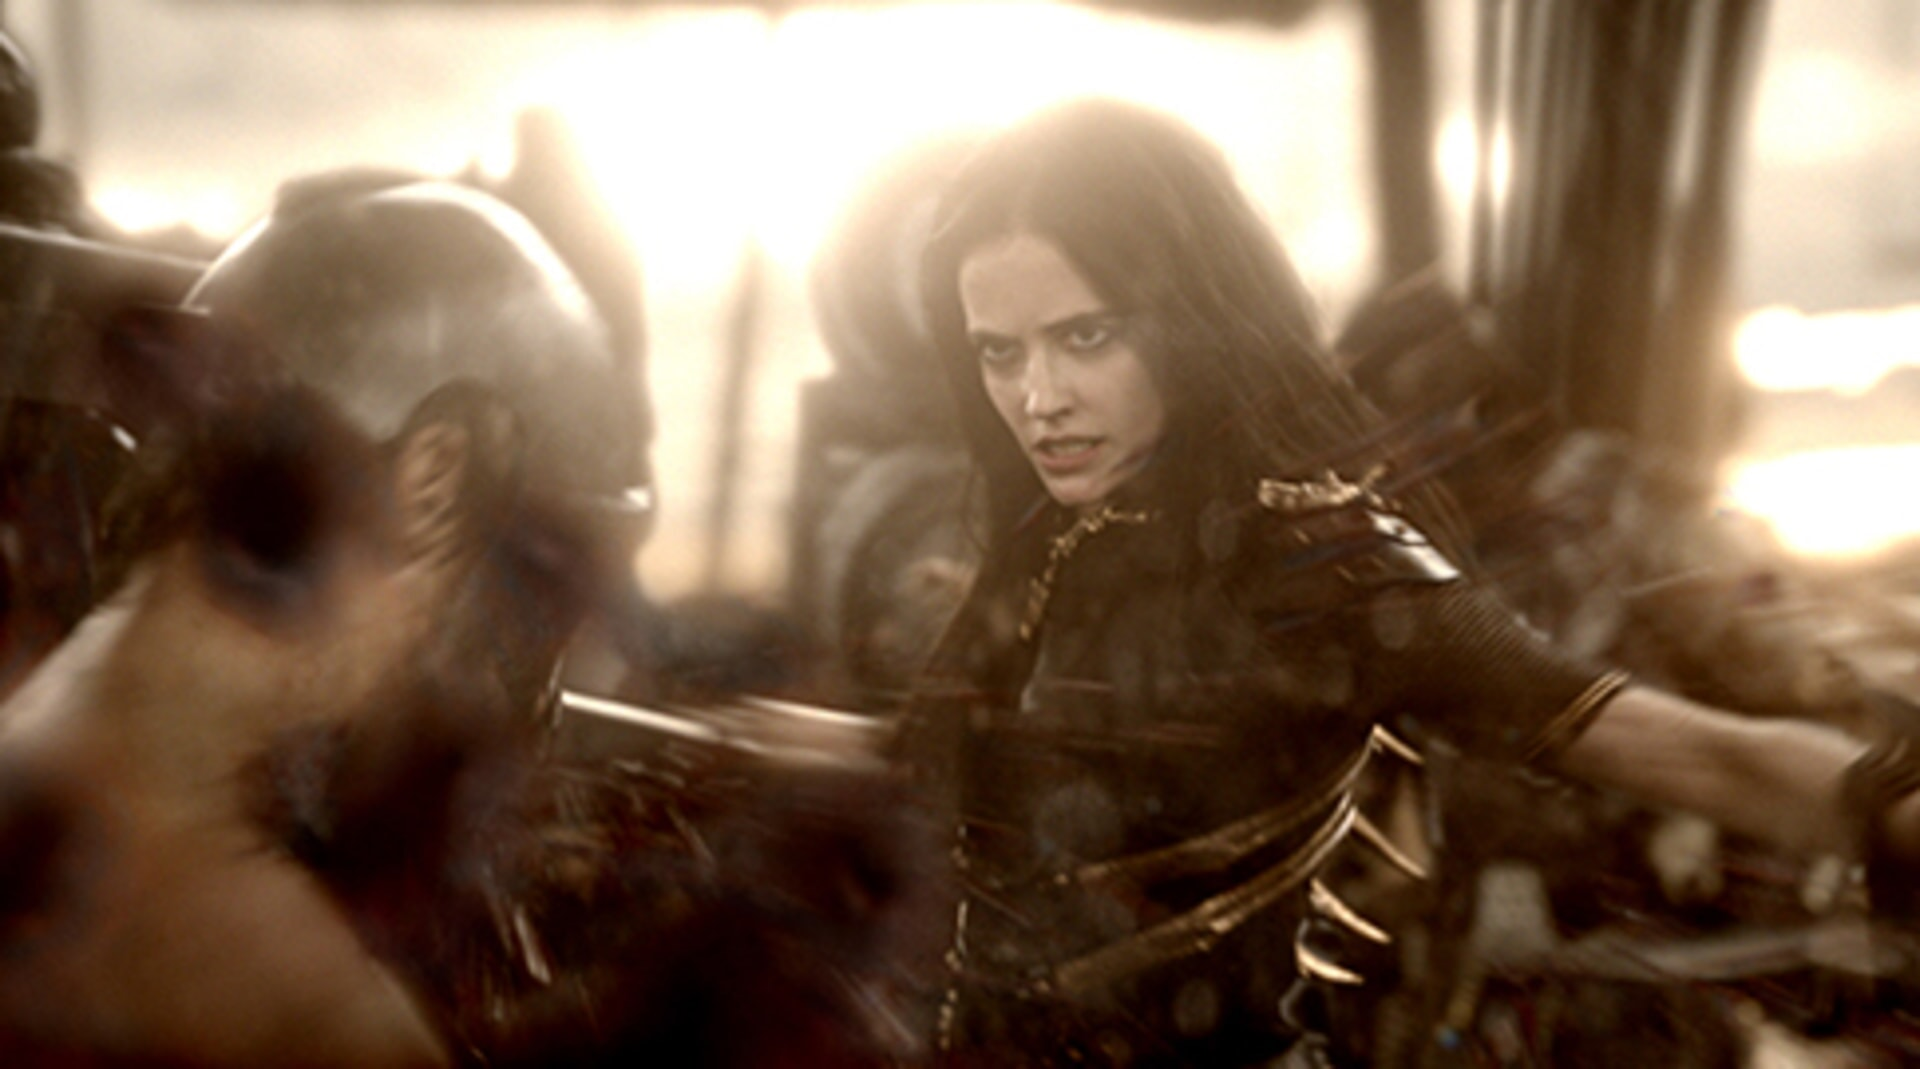 300: Rise of an Empire - Image 4